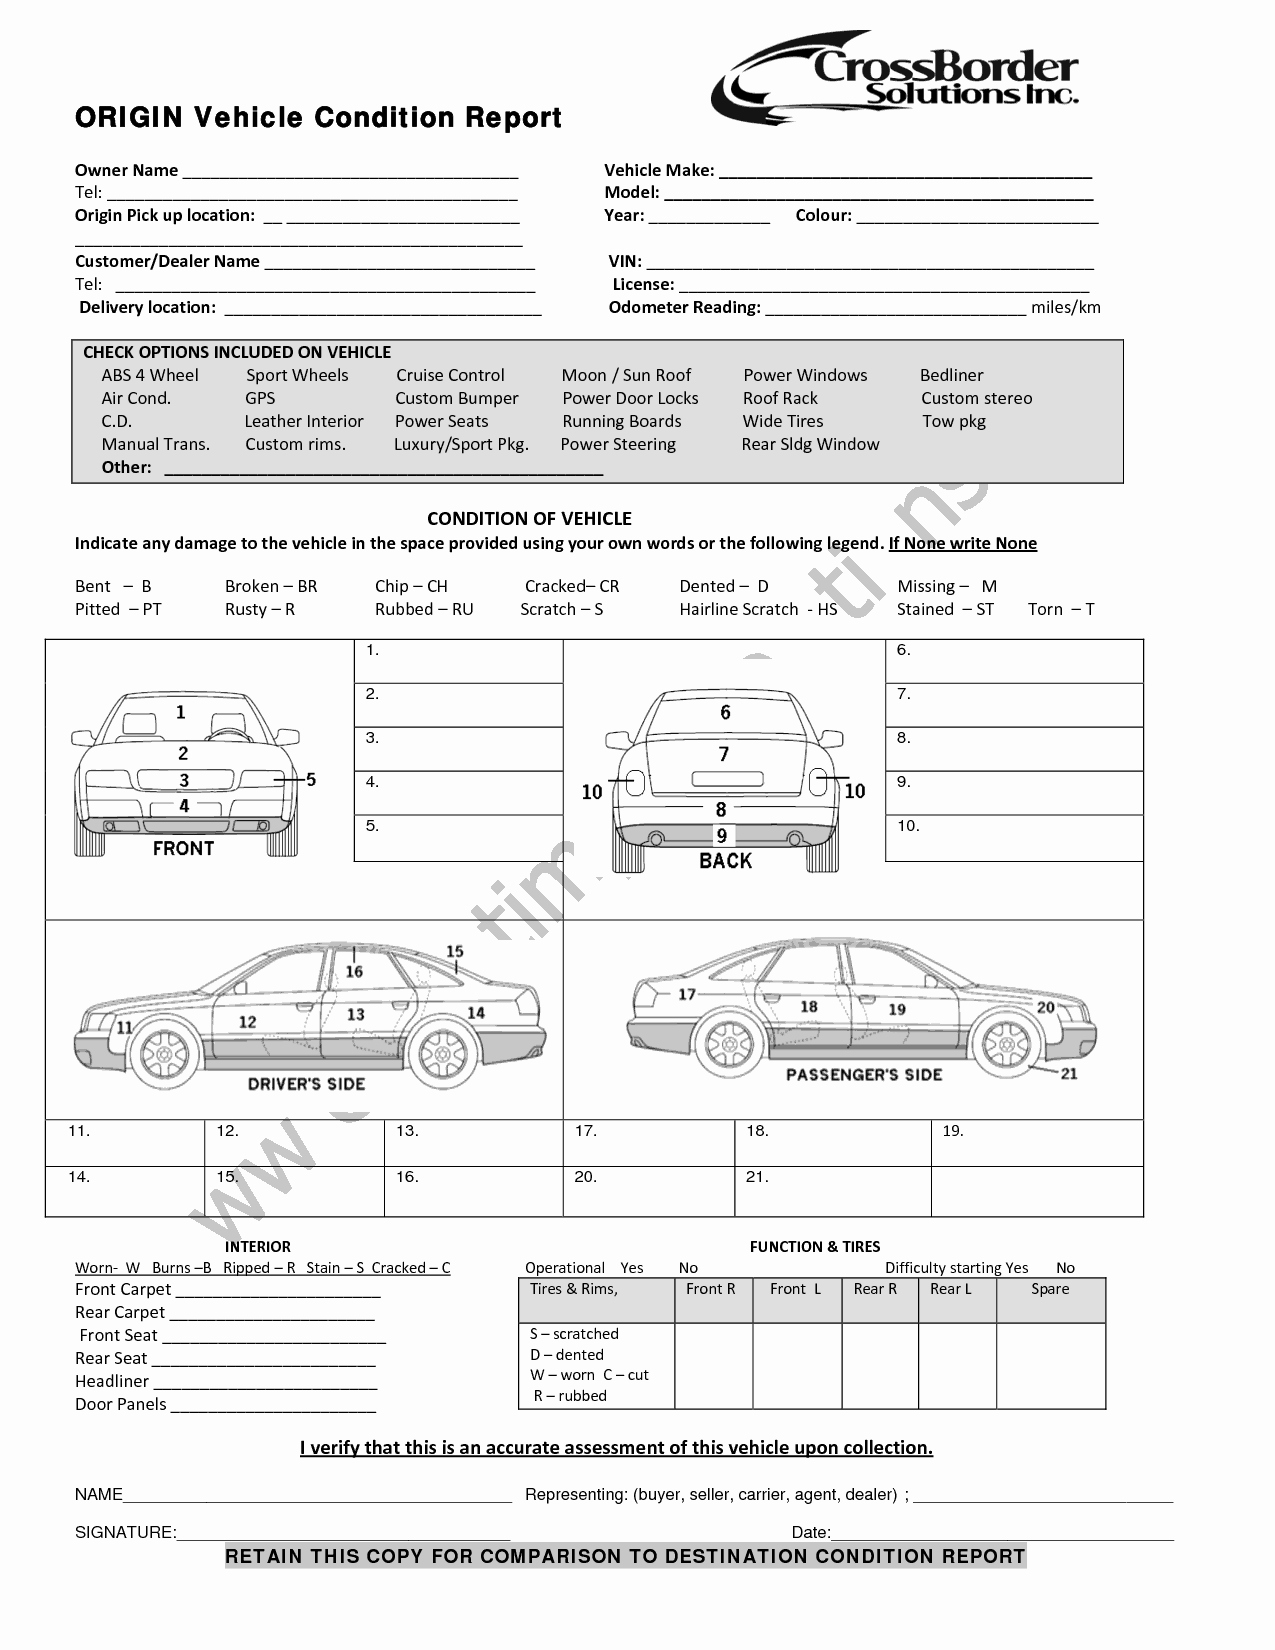 Vehicle Condition Report Template New 5 Vehicle Condition Reports Word Excel Templates